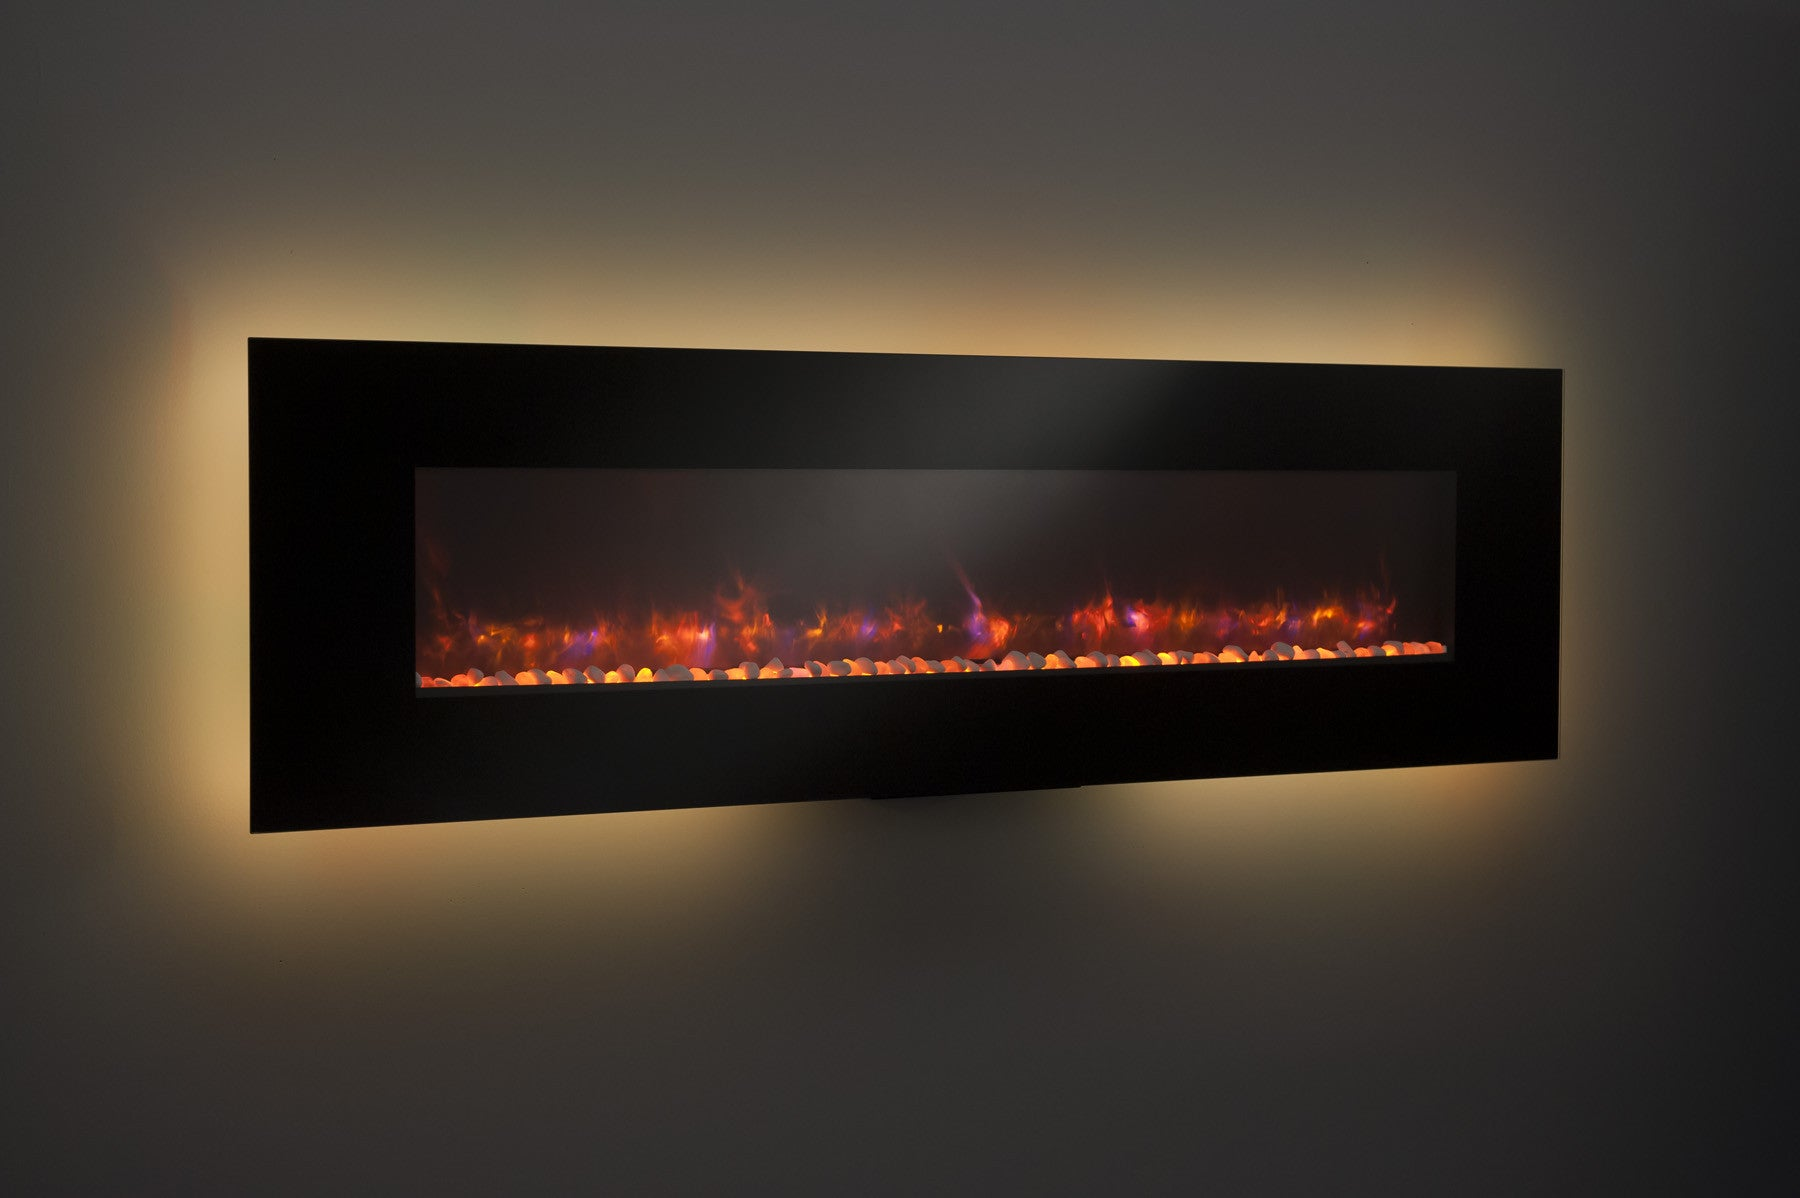 electric wall fireplaces  wall mount fireplaces – ventless  -  inch black linear electric wall fireplace